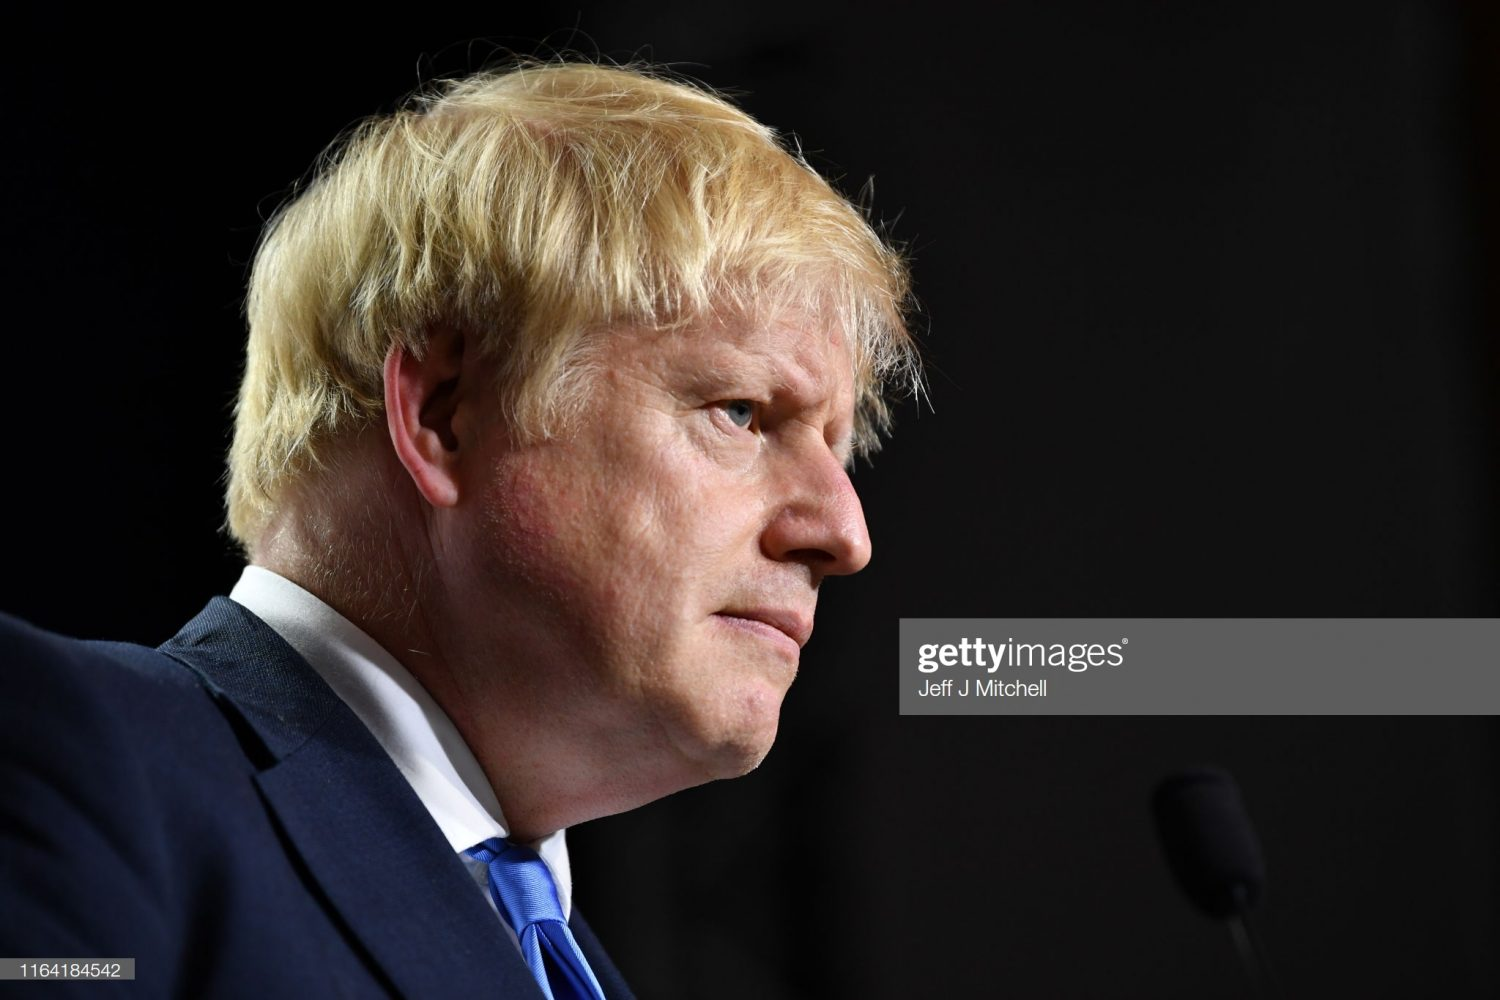 Boris, Brexit, and the Border: An incendiary mix